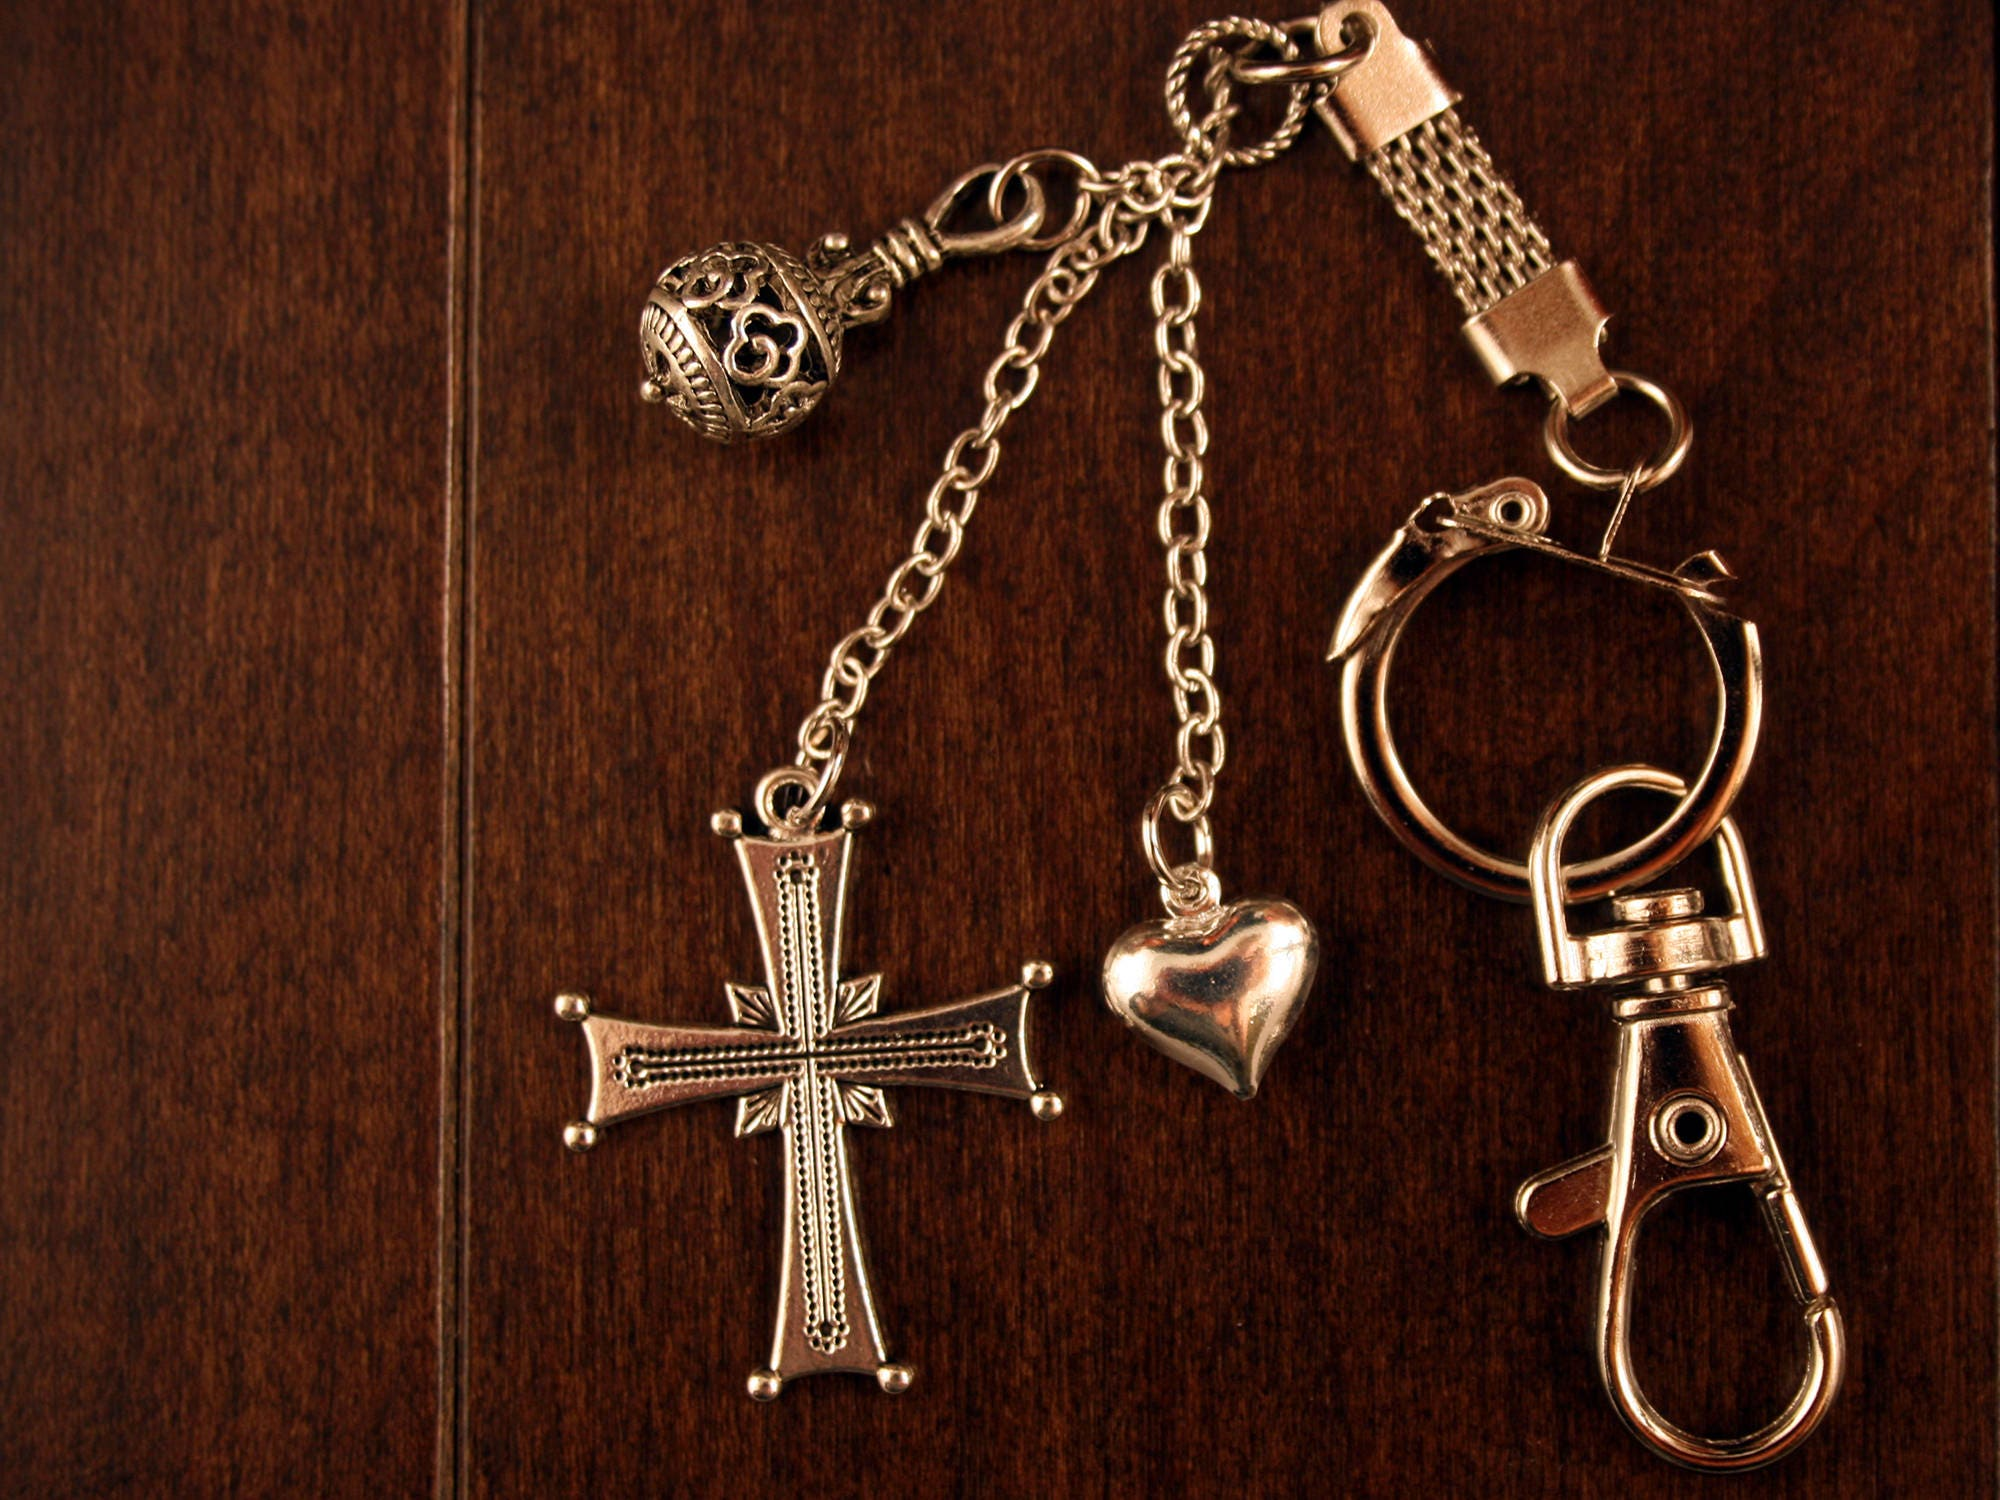 Christian Keychain Silver Detailed Cross Service Incense Charm